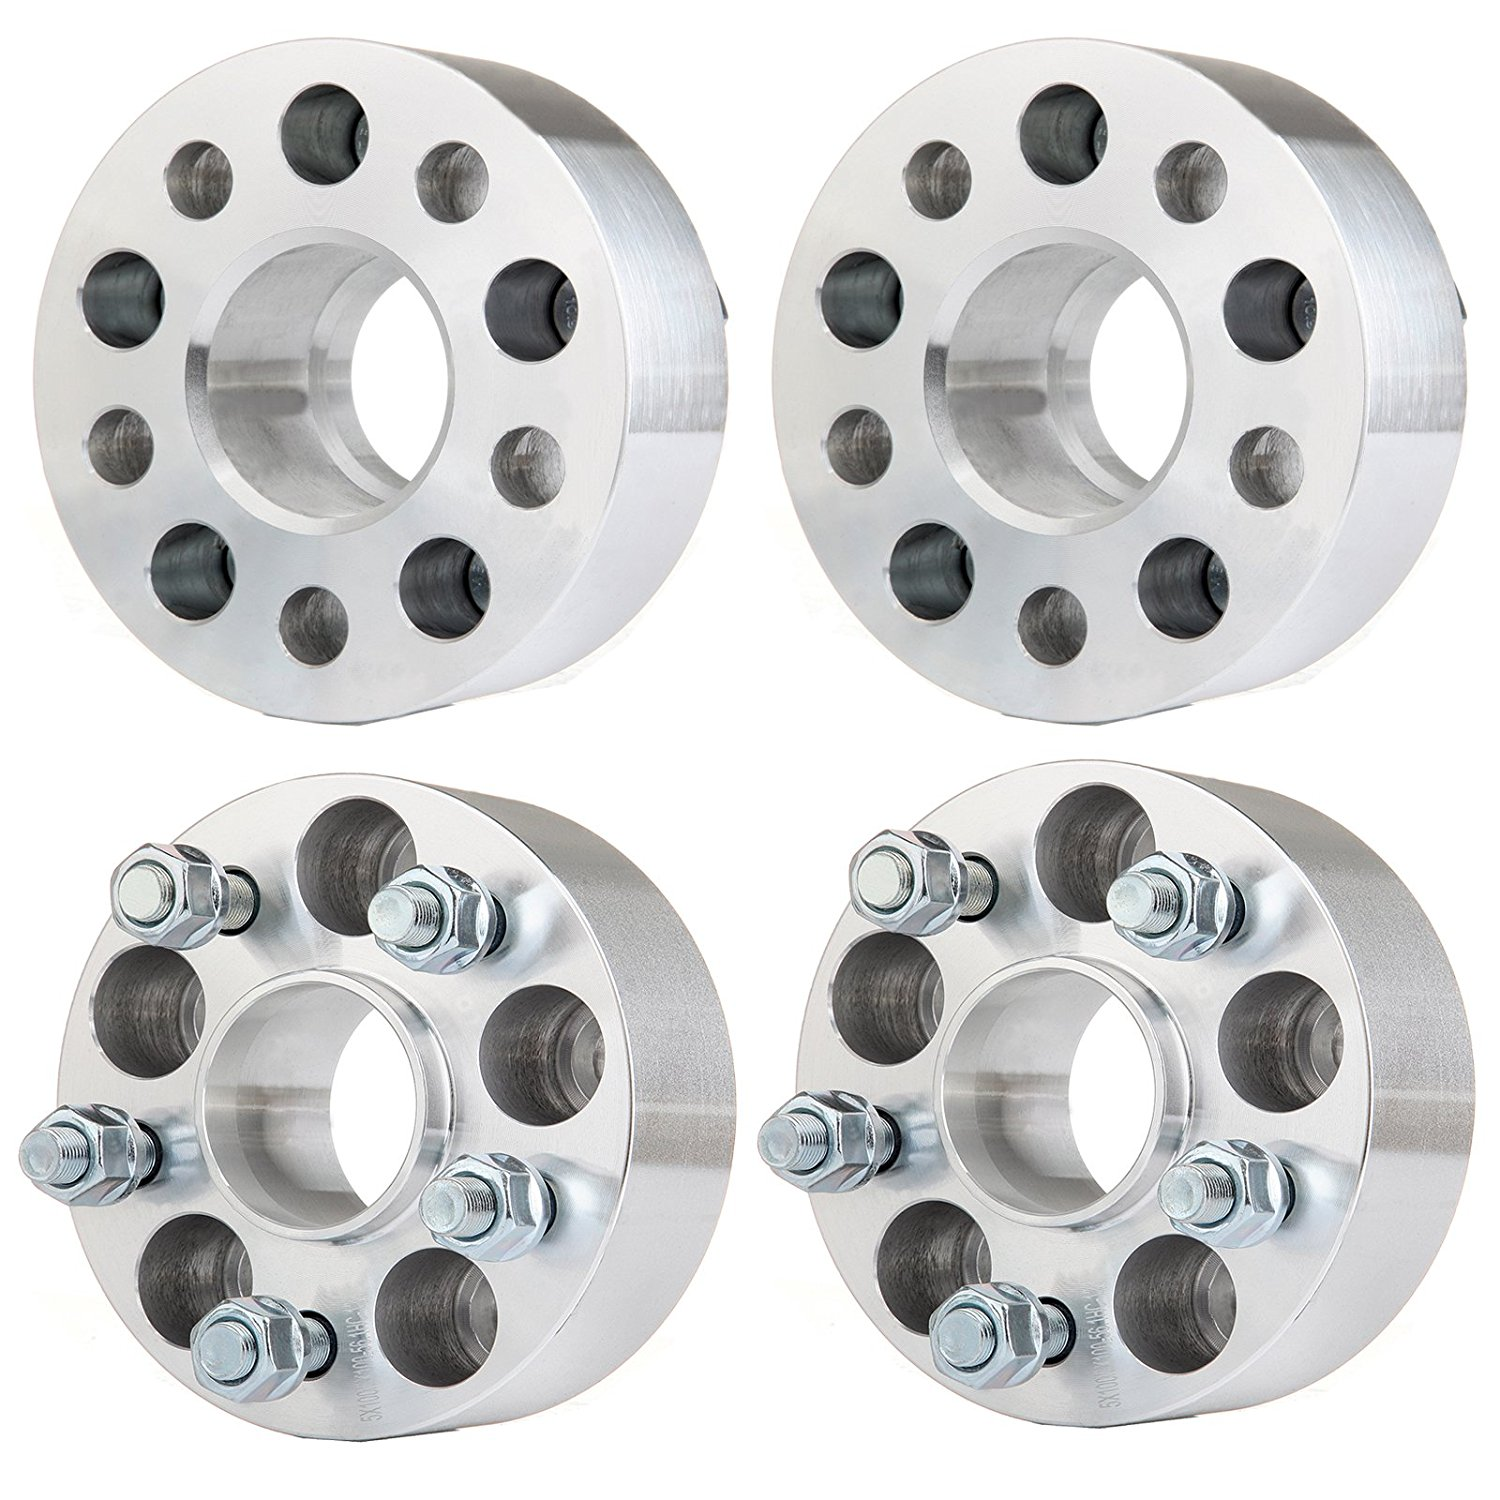 Cheap Subaru Wheel Size Find Deals On Line At 2000 Outback Axle Nut Get Quotations Eccpp Spacers 5lugs 4pcs 2 50mm Thick 5x100mm For 2014